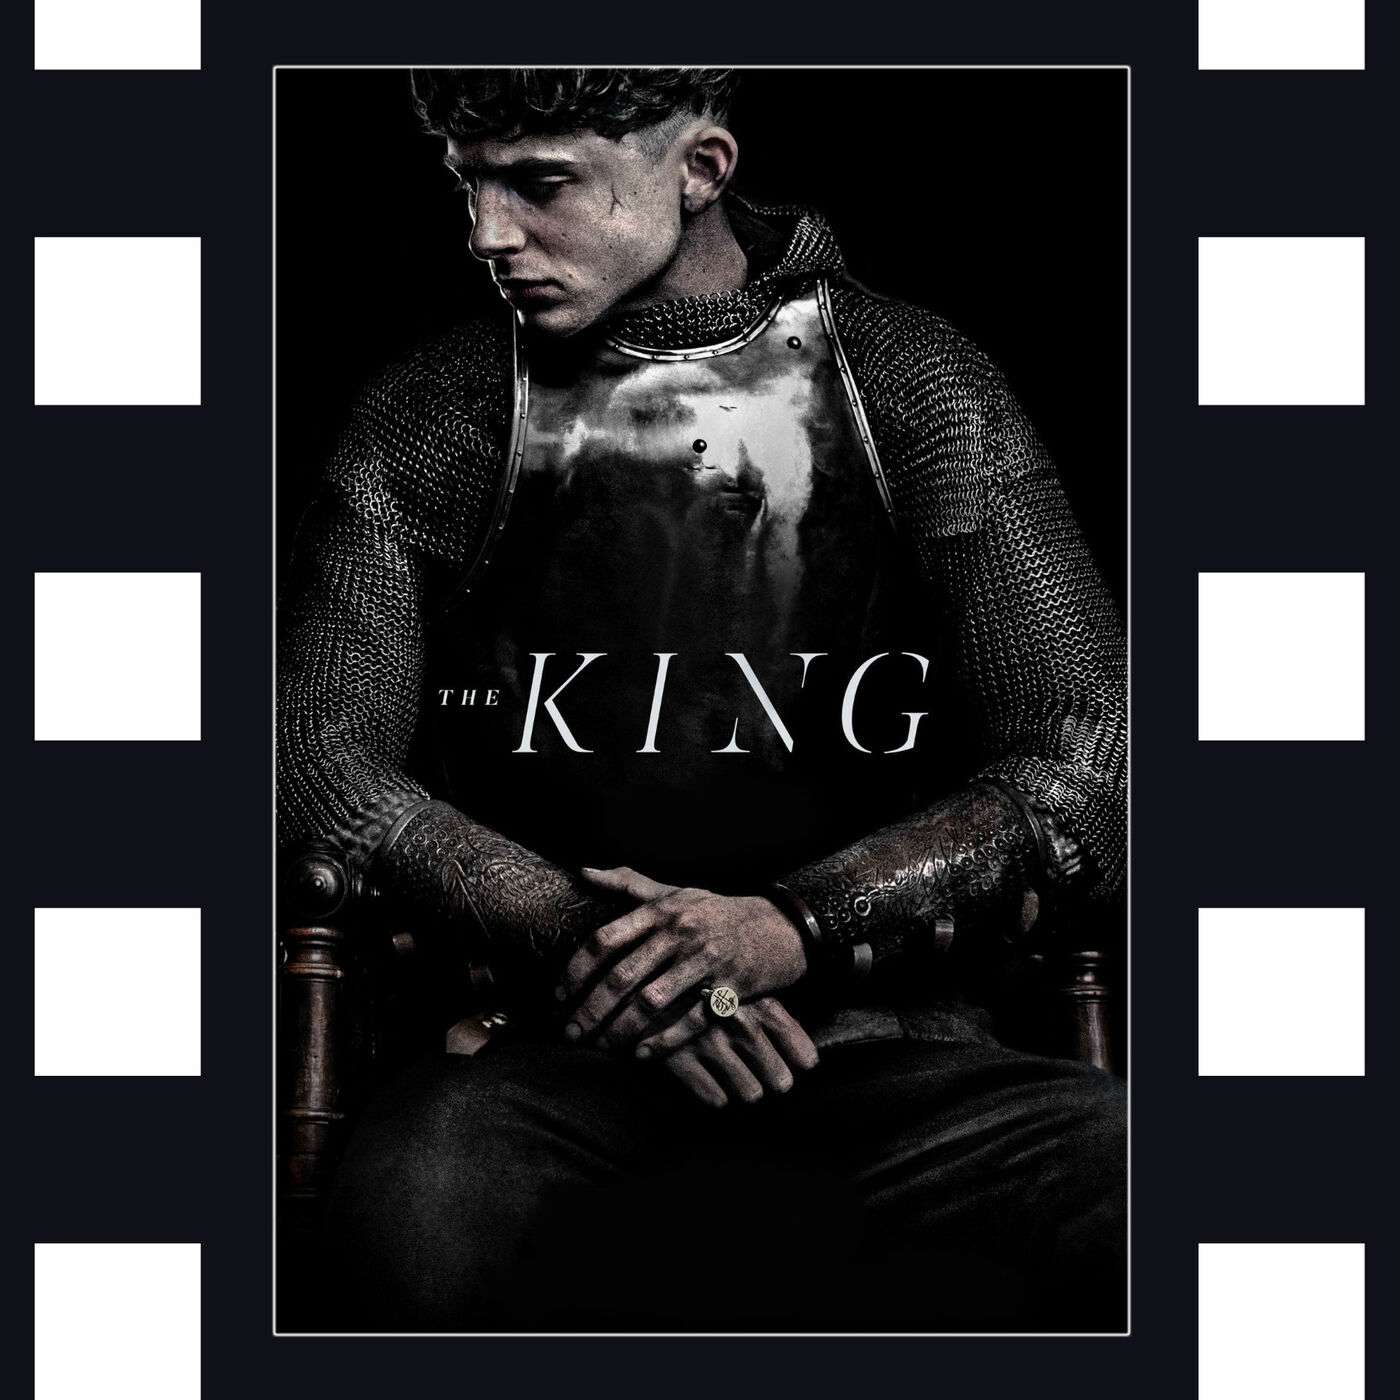 The King (2019) - Royalty and Responsibility